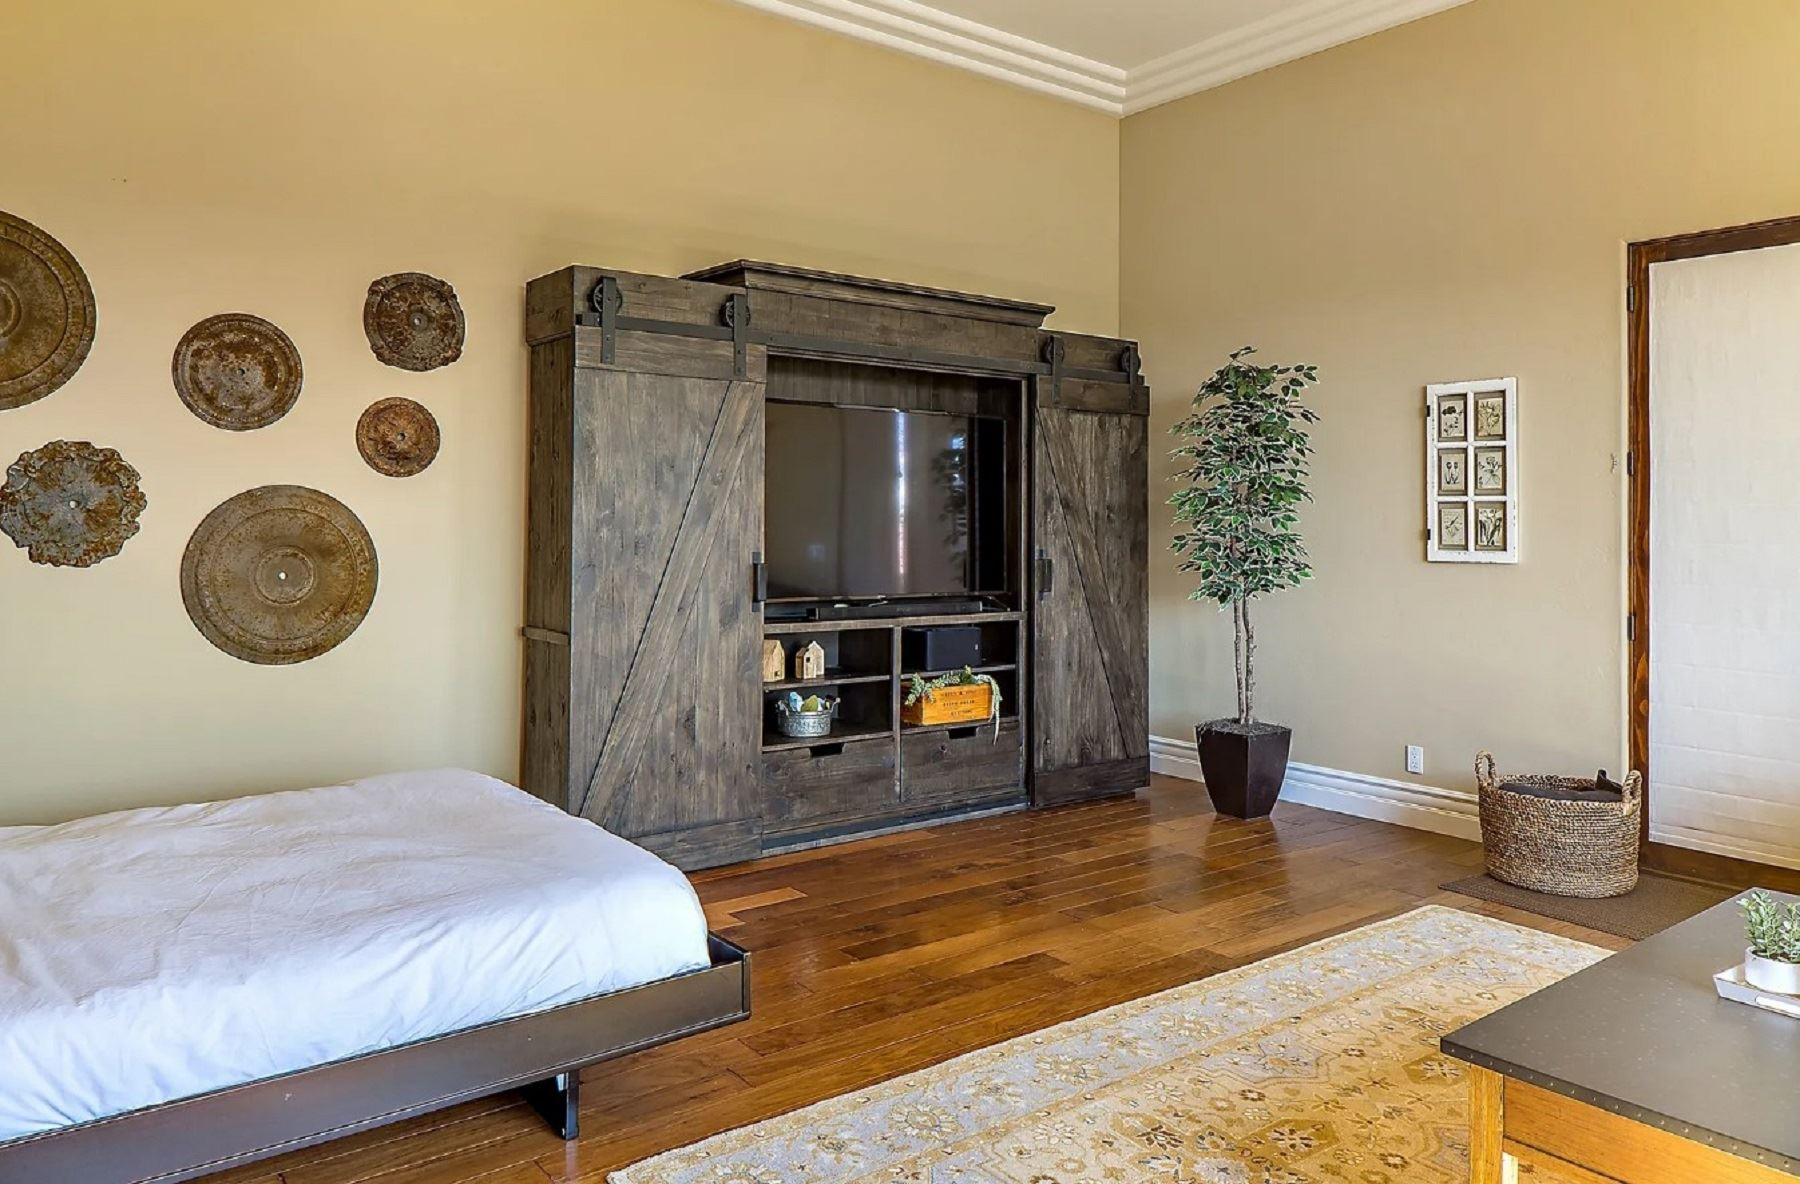 Frontier Farmhouse - Interior - Living area with murphy bed and TV console encased in bar doors